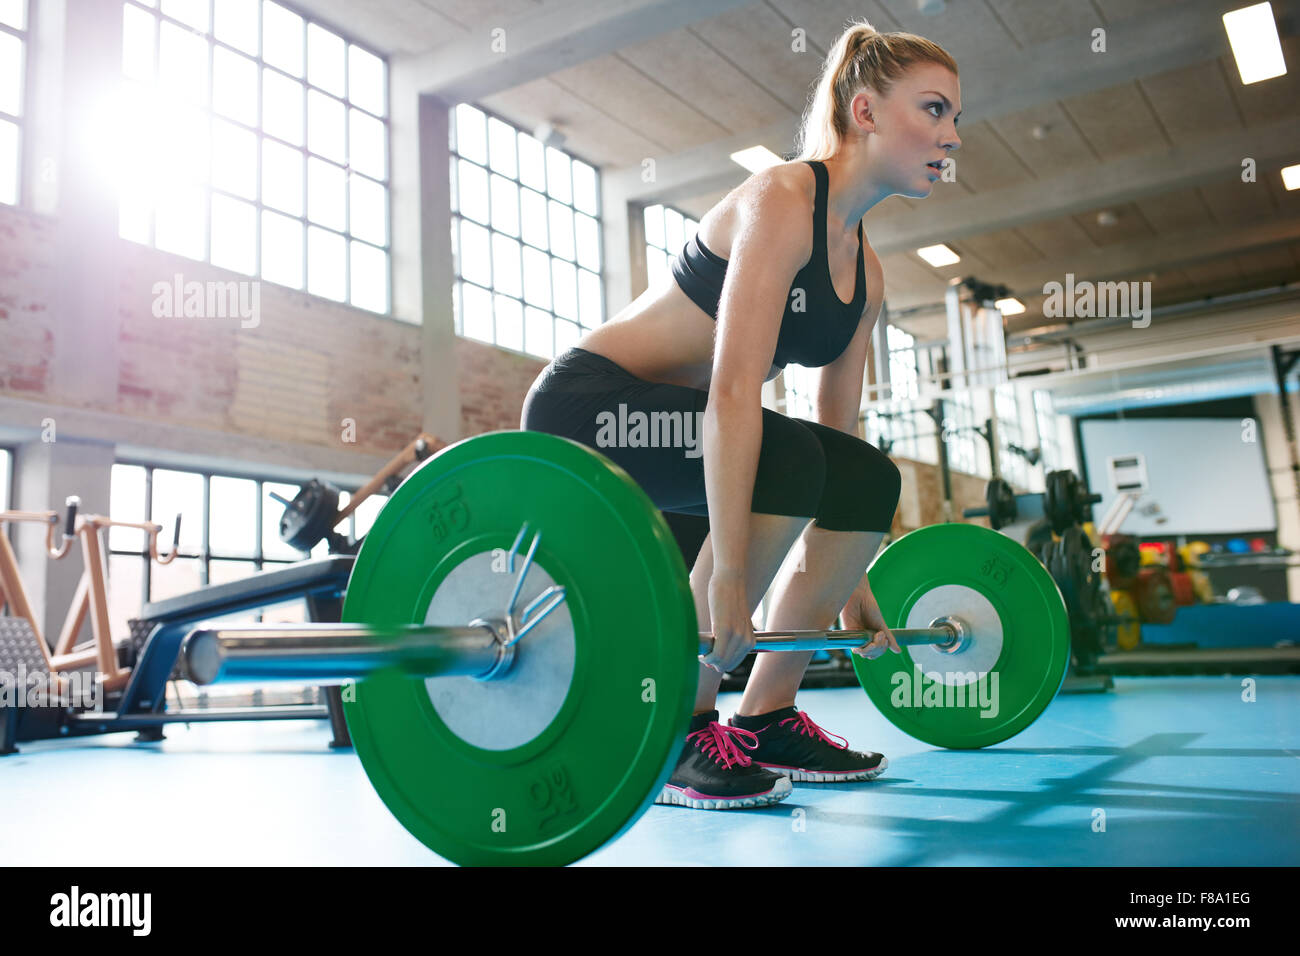 Muscular caucasian woman in a gym doing heavy weight exercises. Young woman doing weight lifting at health club. - Stock Image